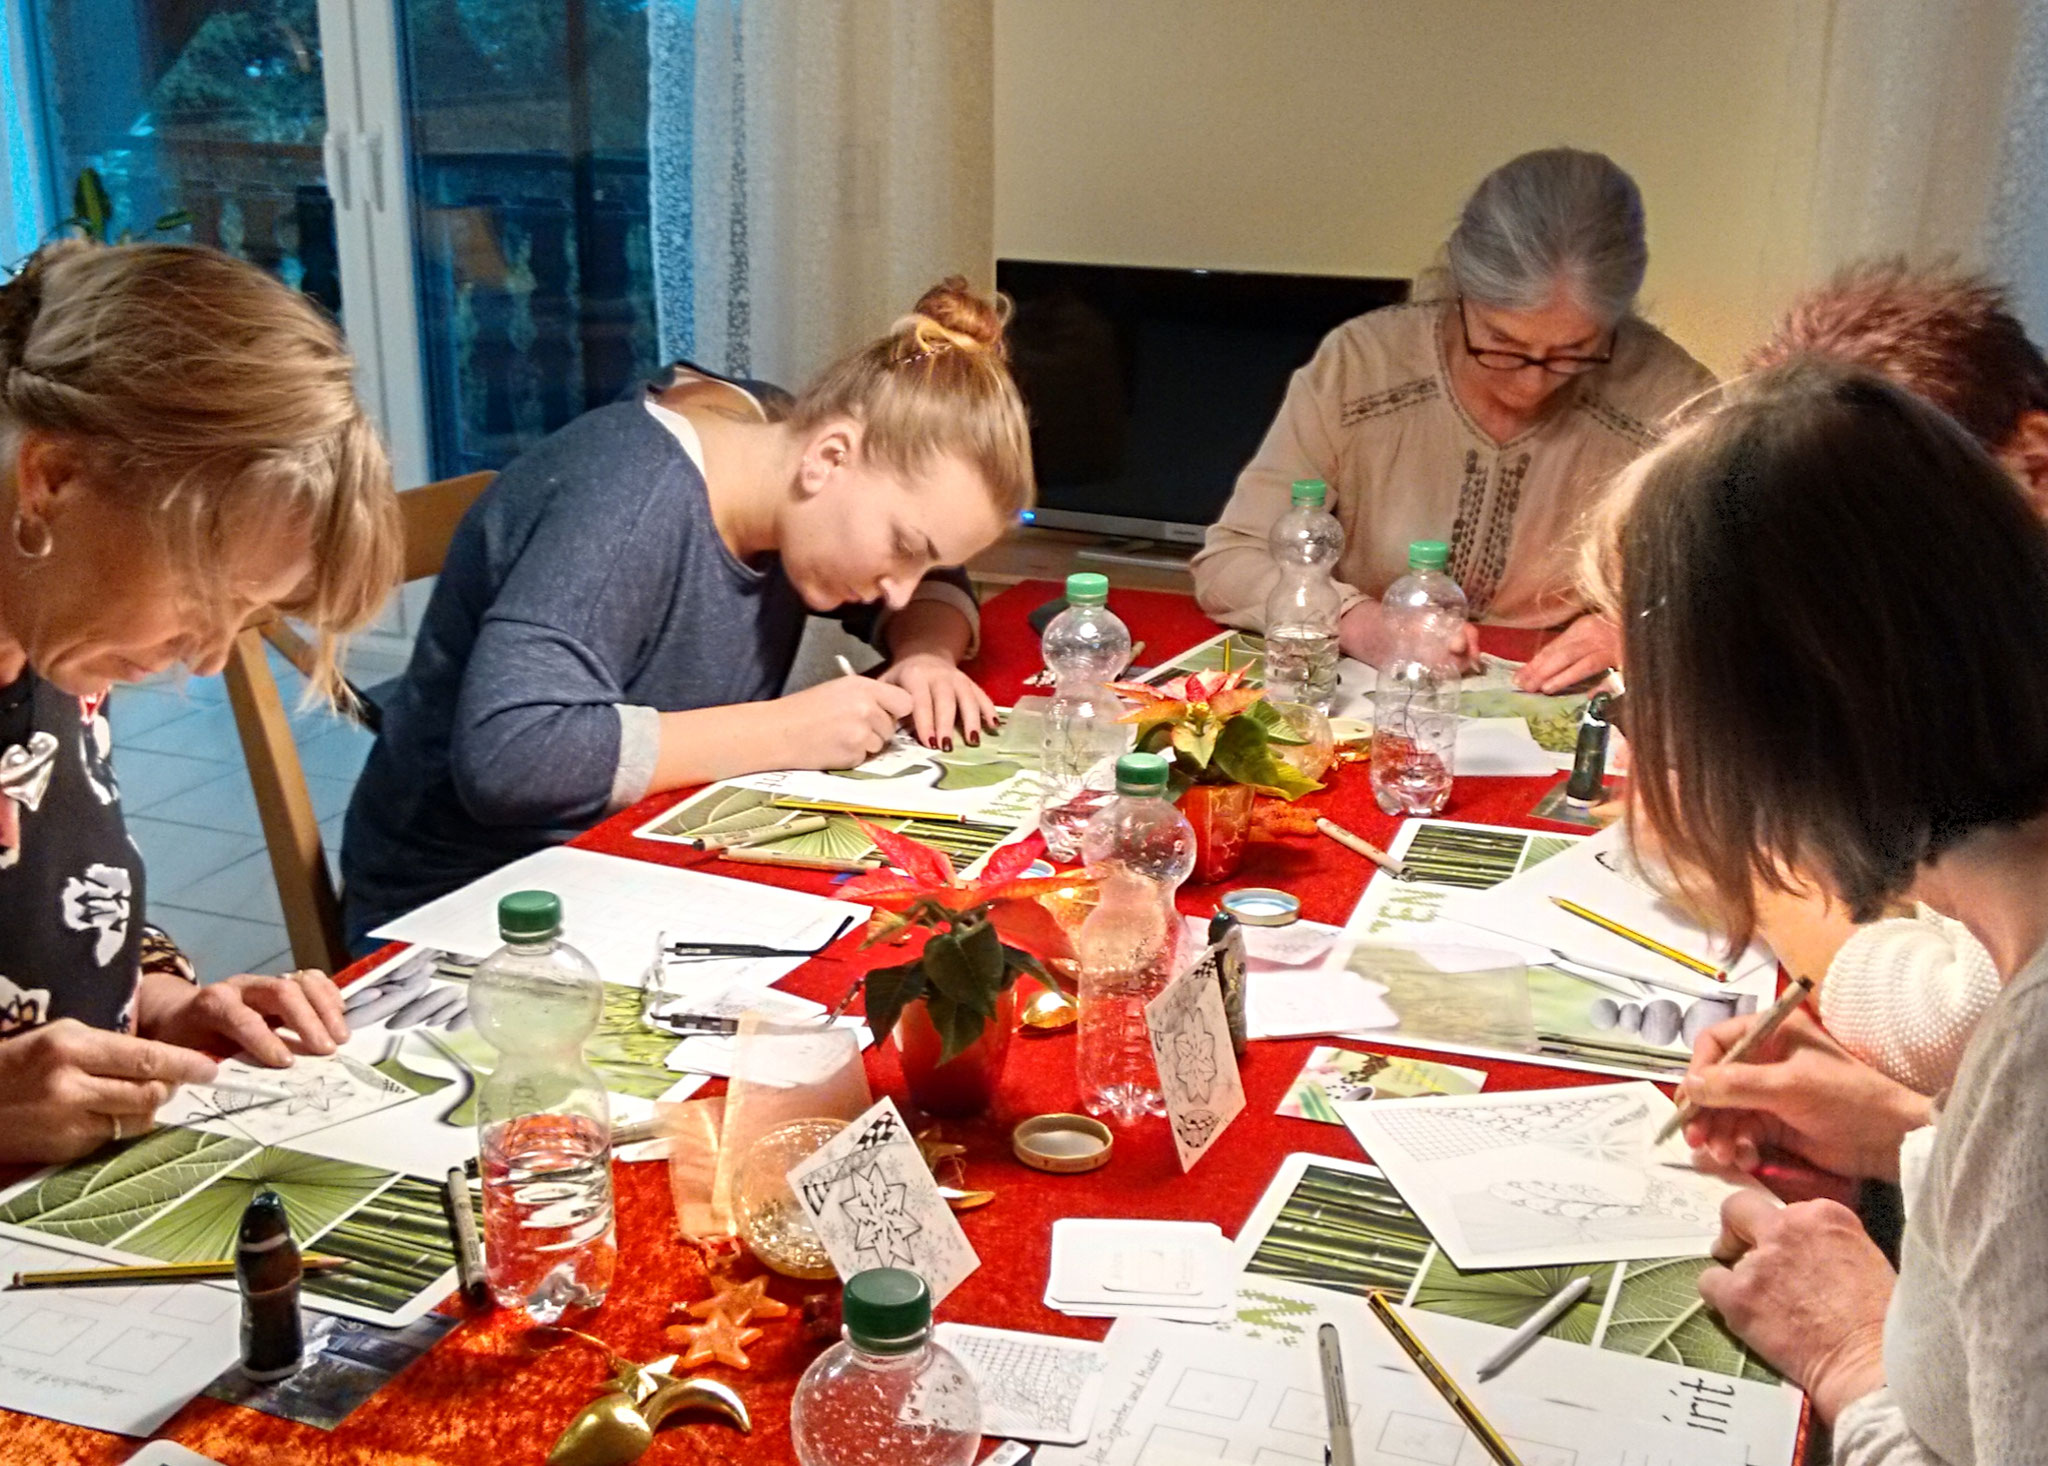 Workshop Meditatives Zeichnen 26.11.2016